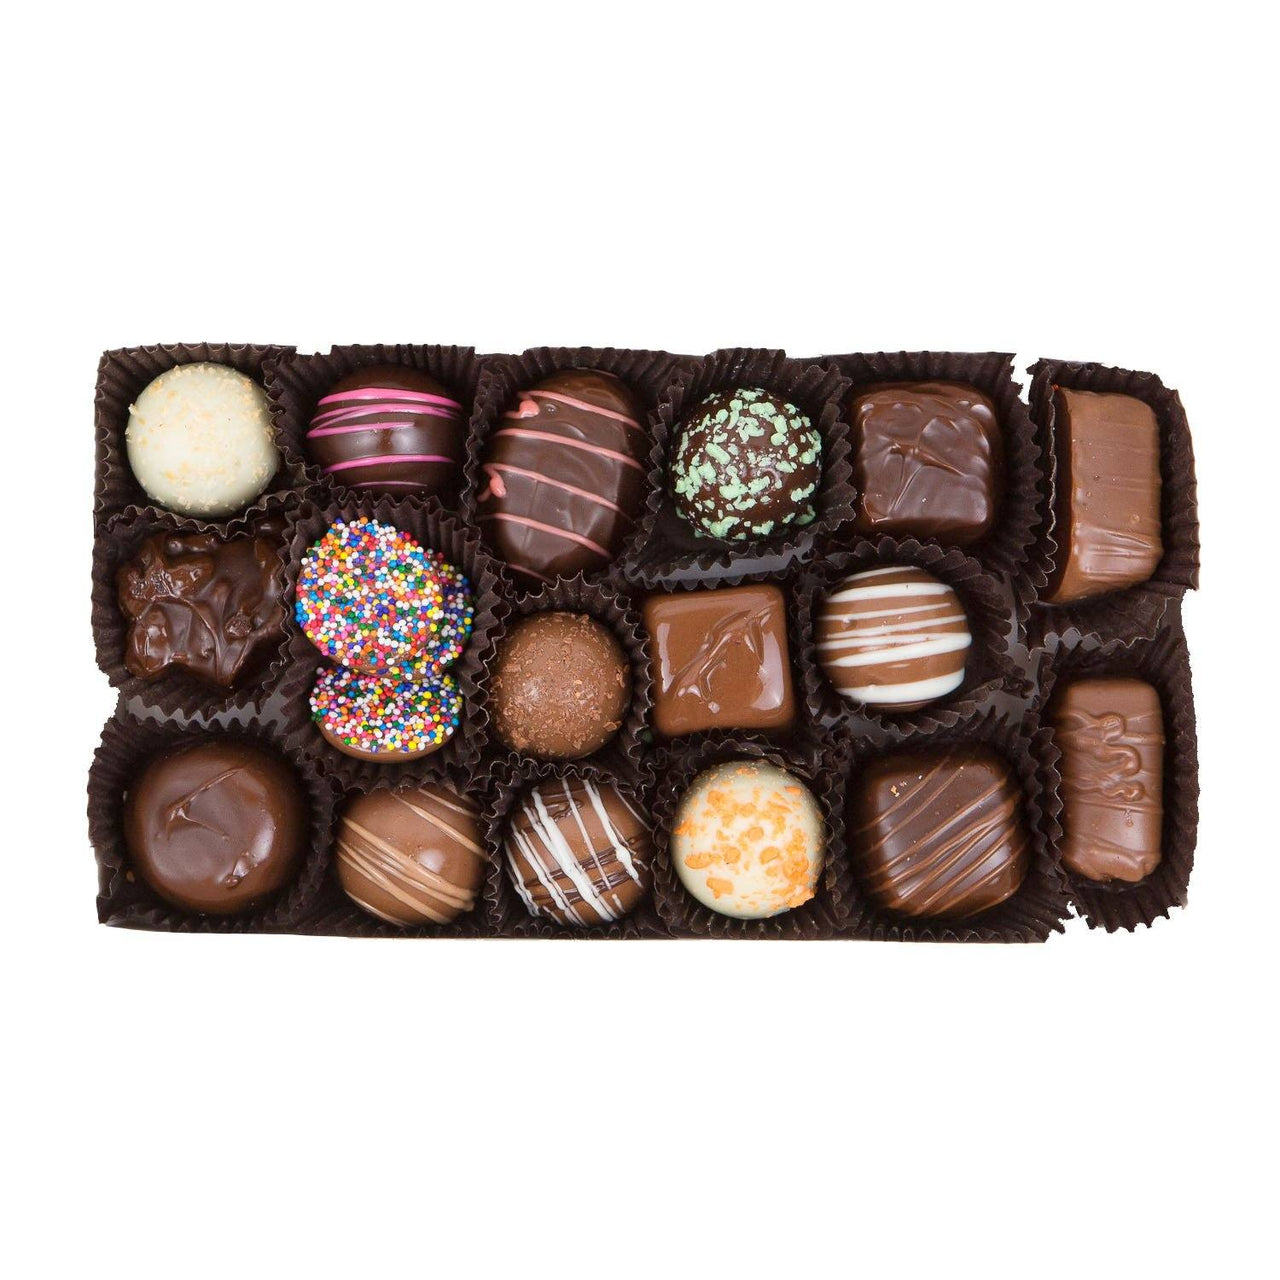 Gifts for Your Boss - Assorted Chocolate Gift Box - Jackie's Chocolate